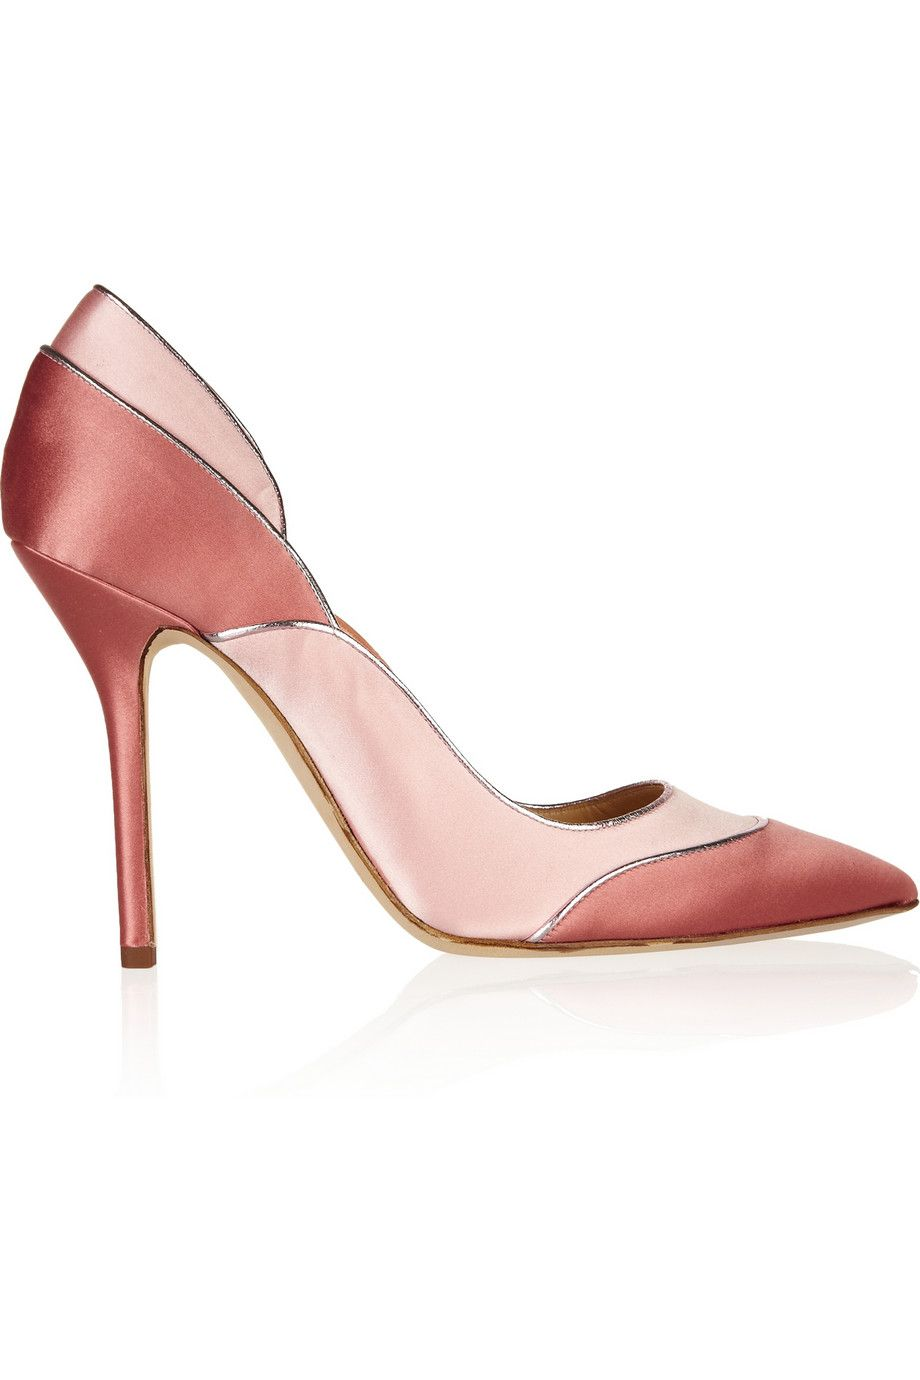 Oscar de la RentaGuiana two-tone satin pumps